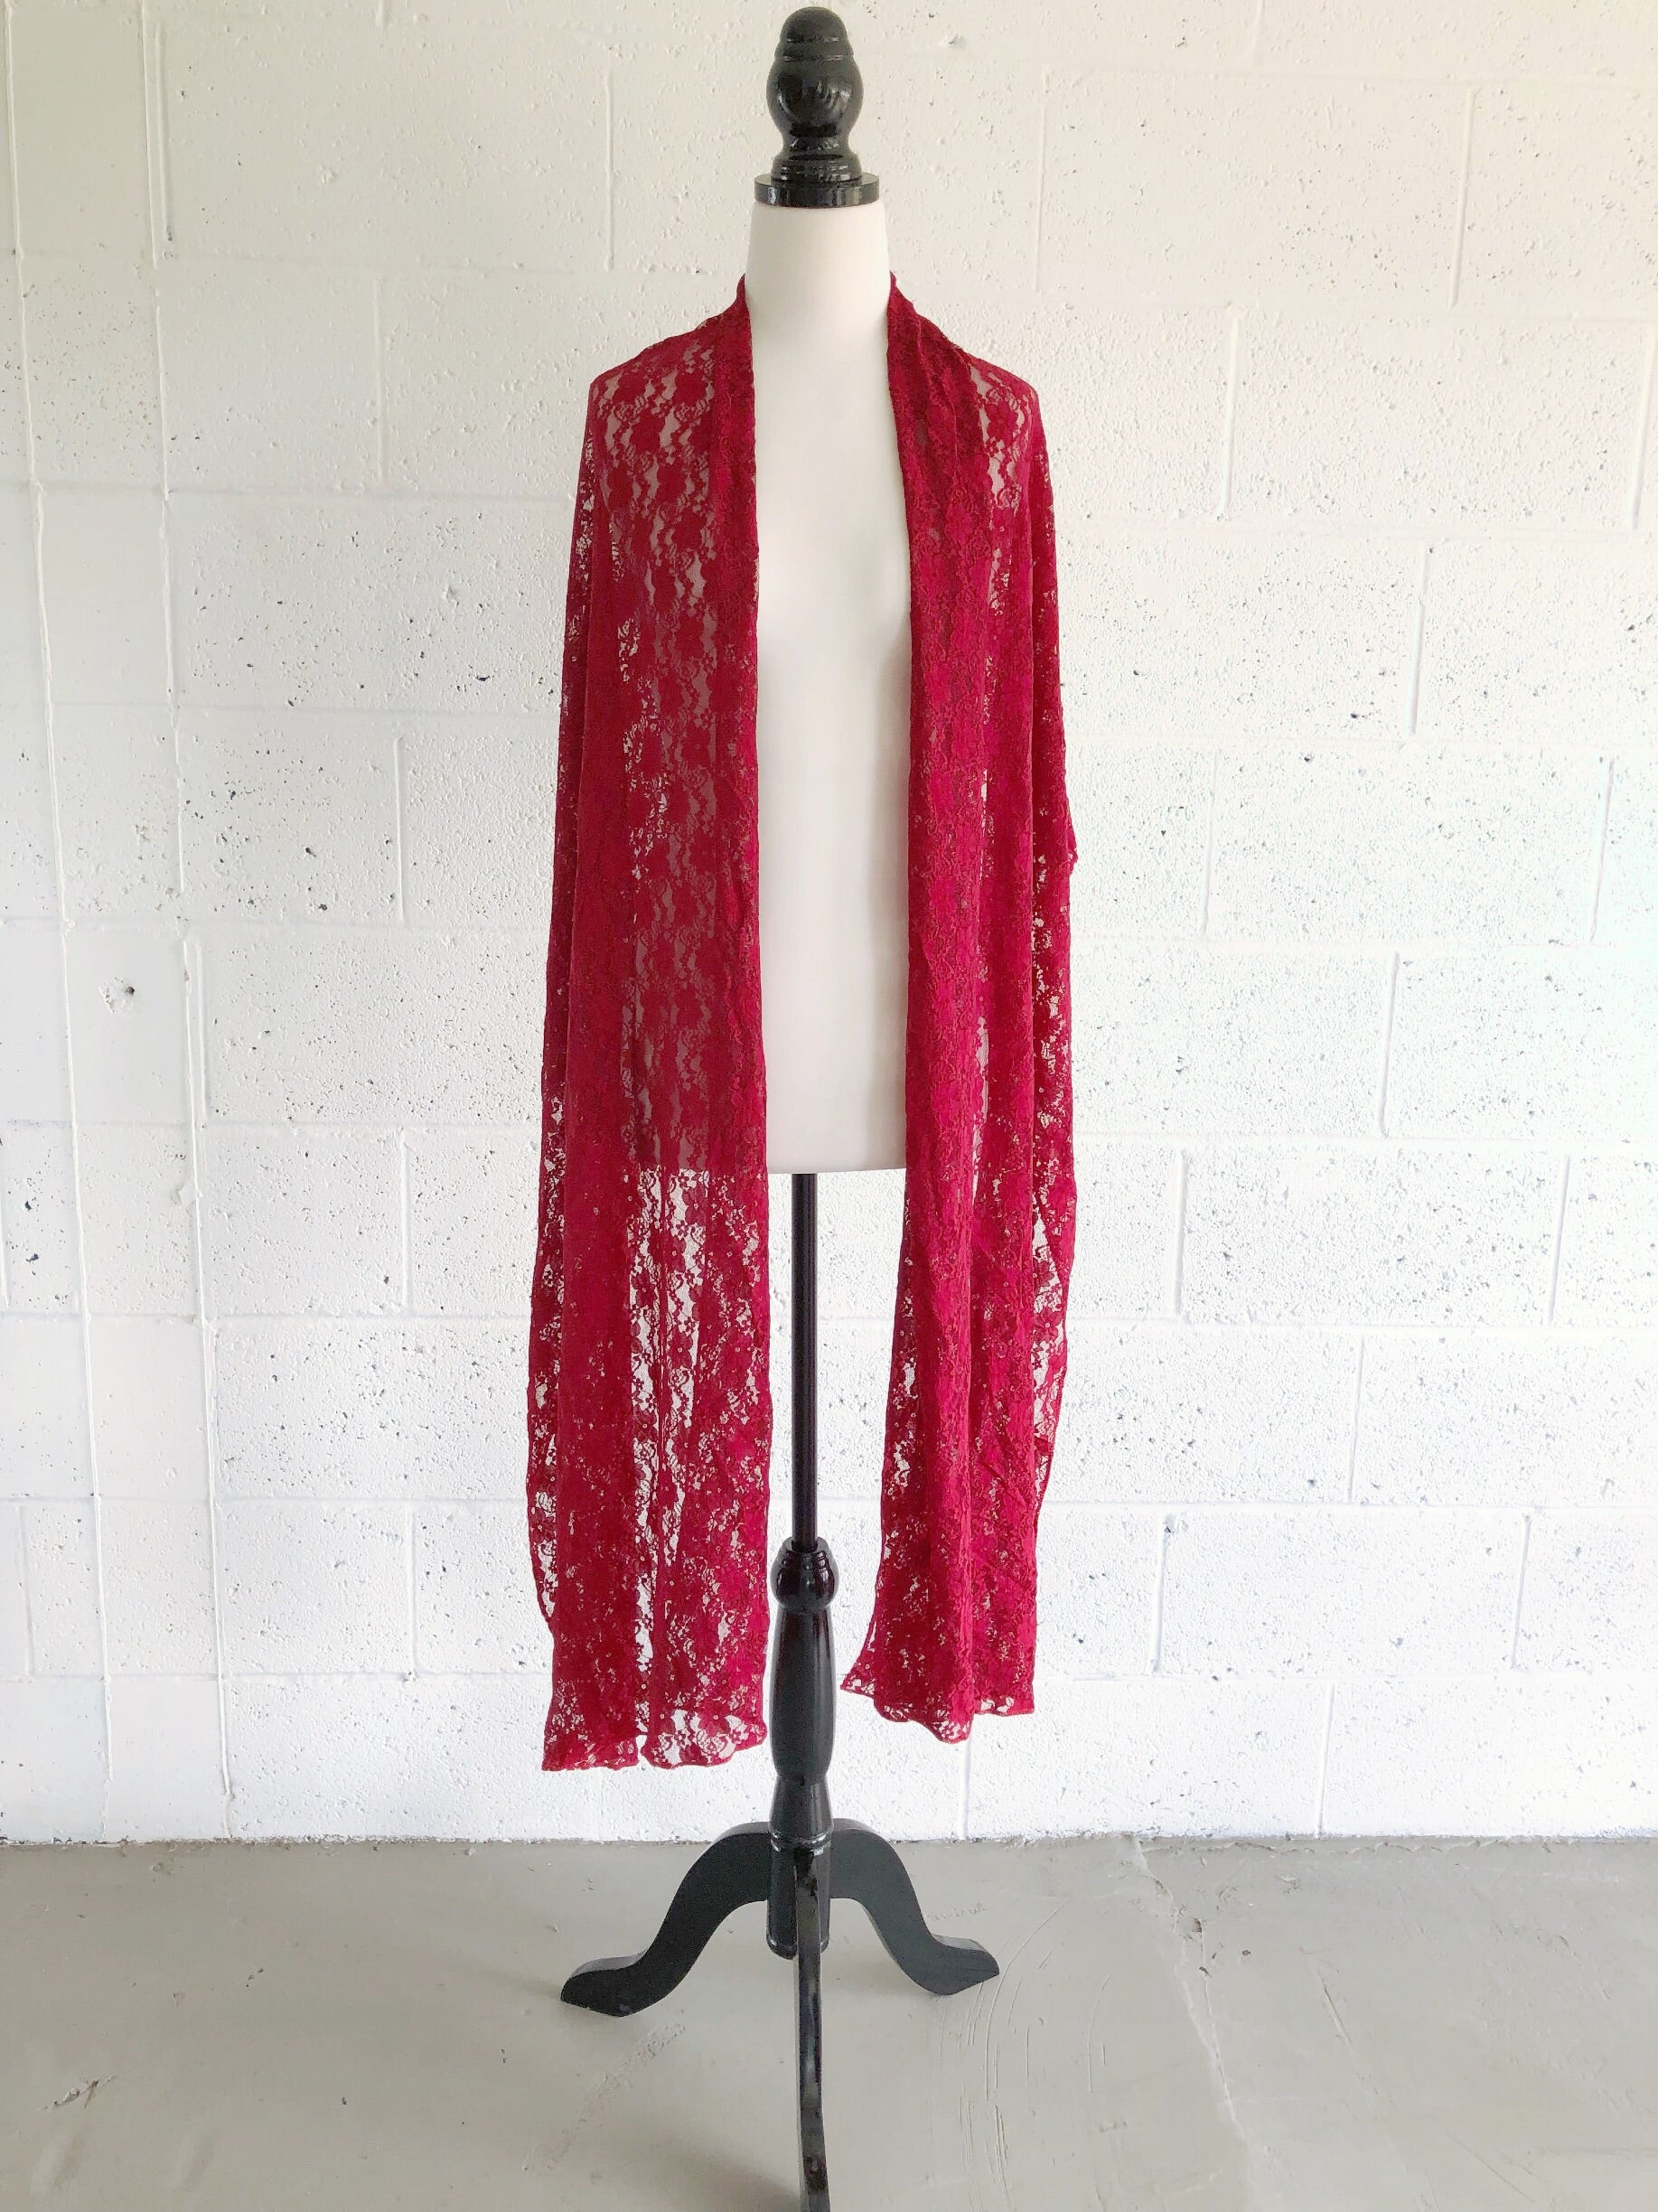 Lace Shawl - Made by Erika Convertible Collection